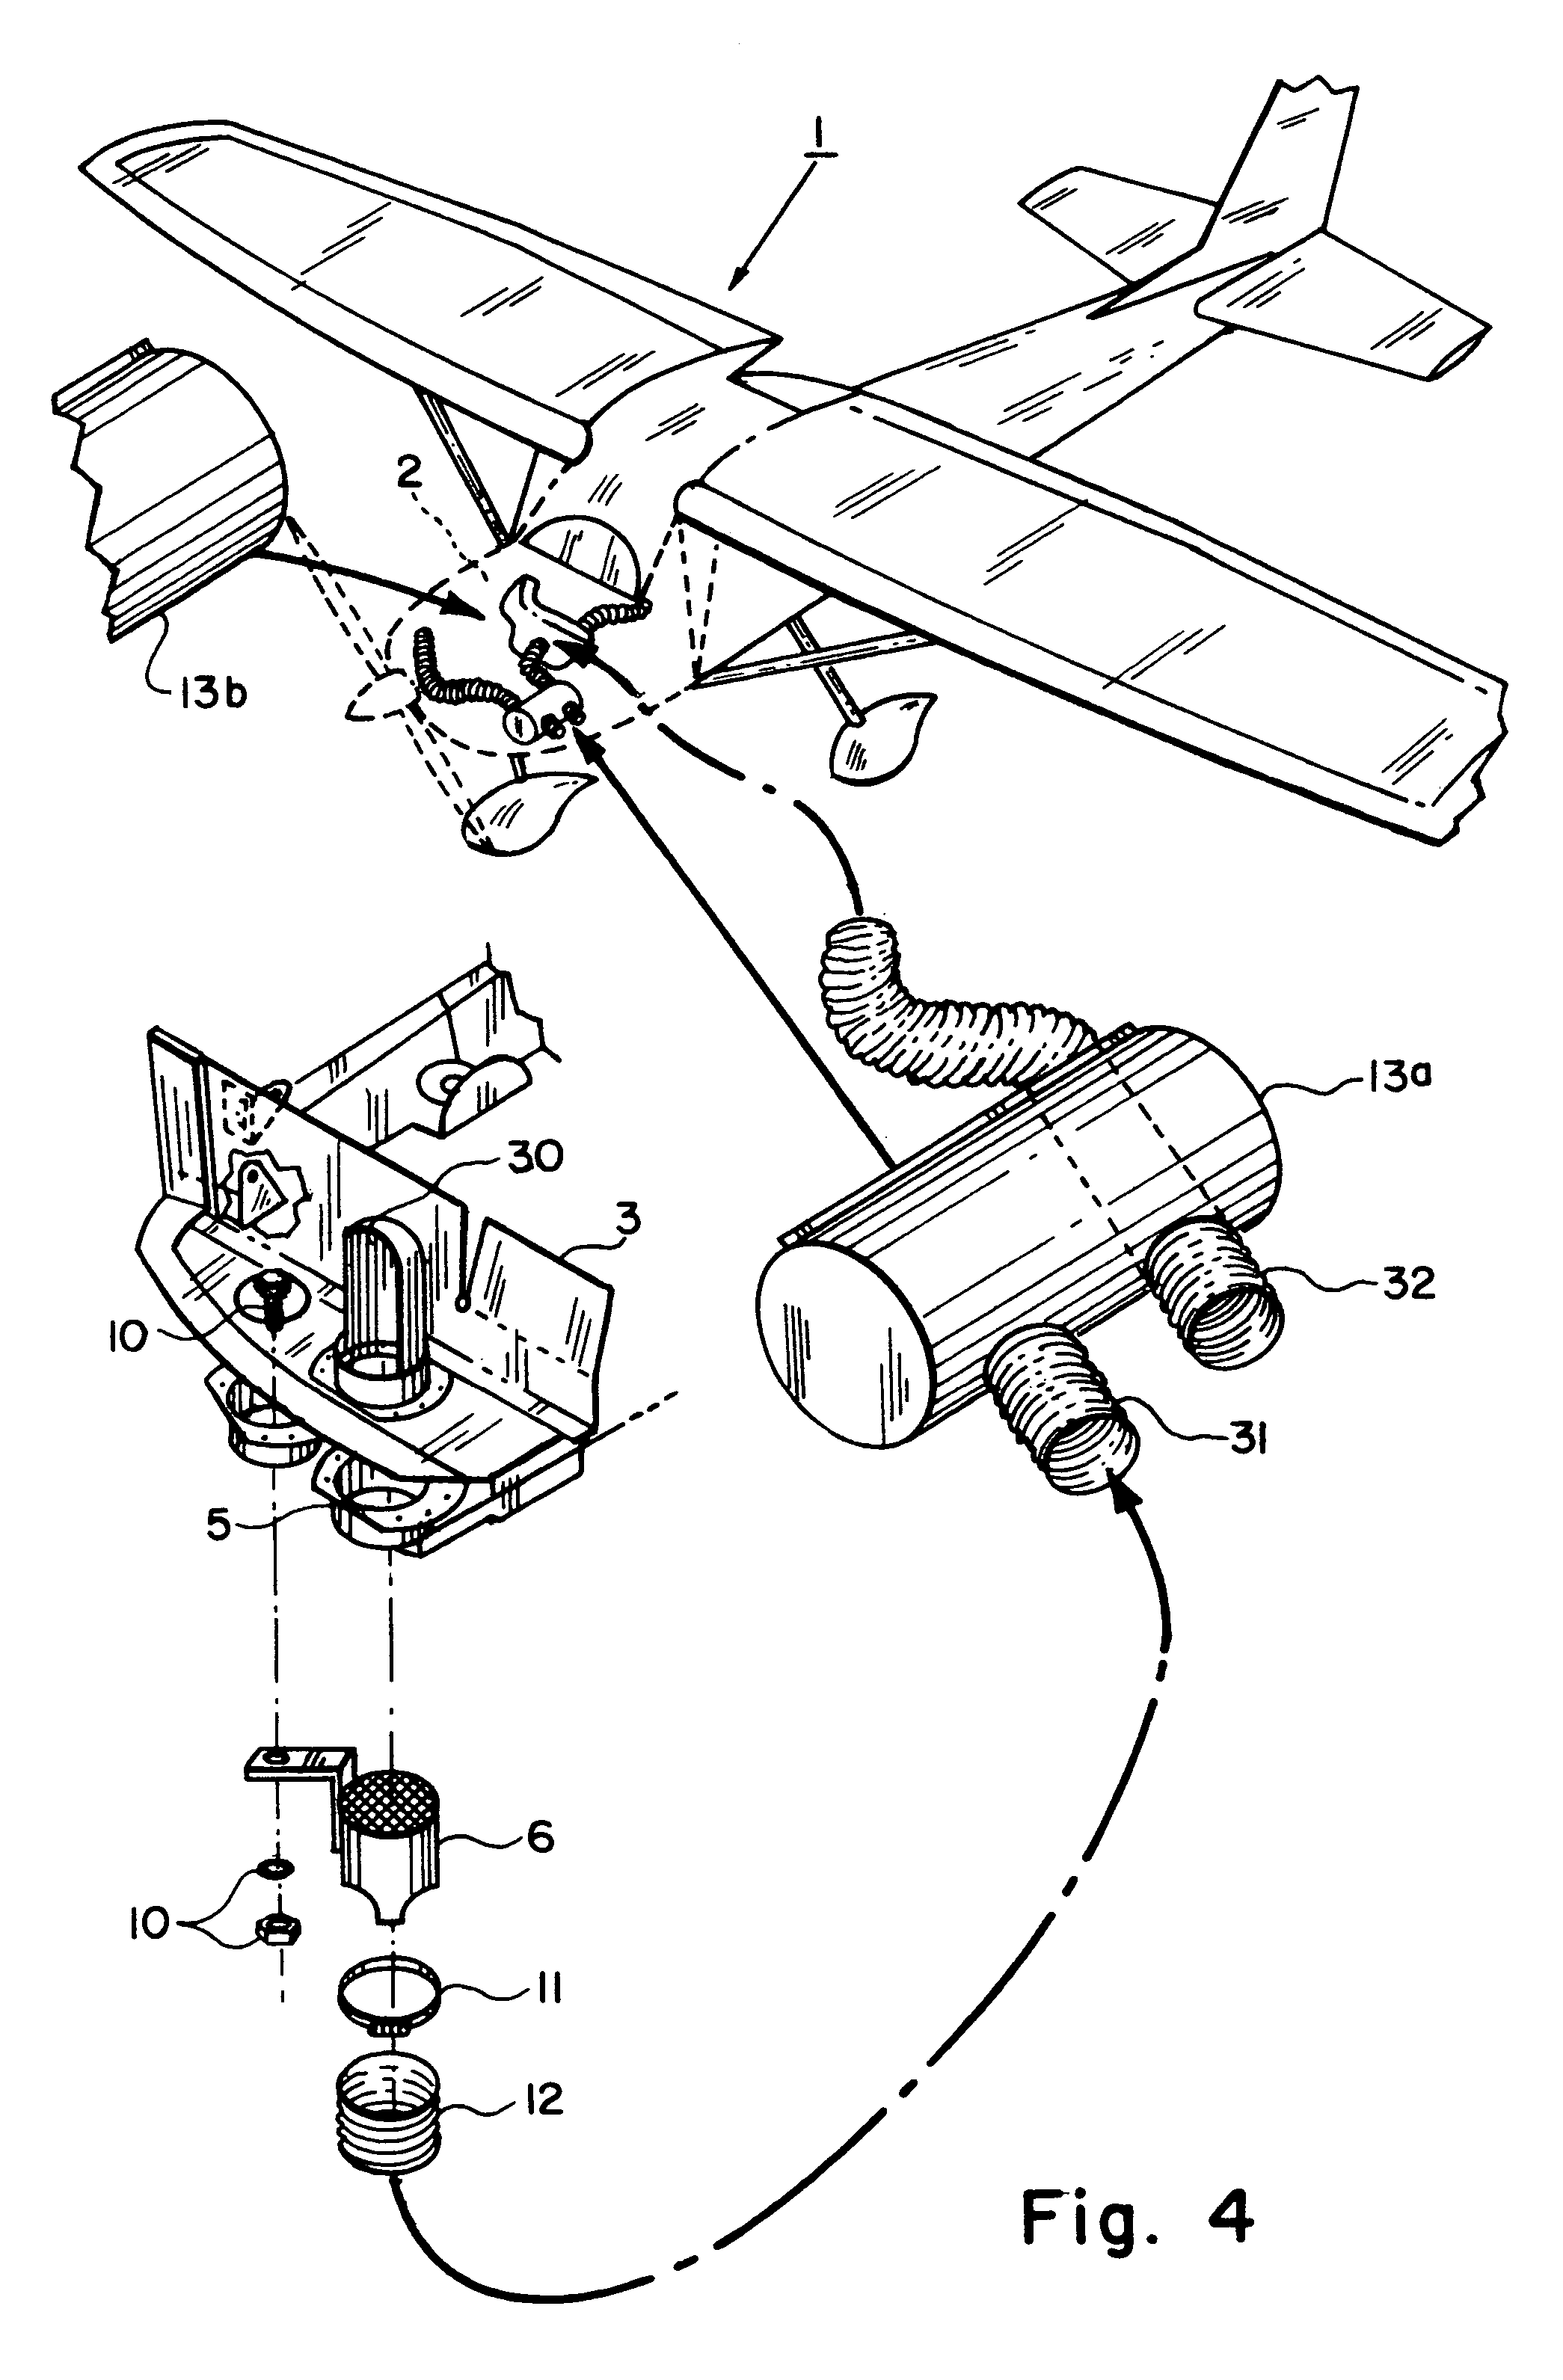 US7017828 on airplane electrical system